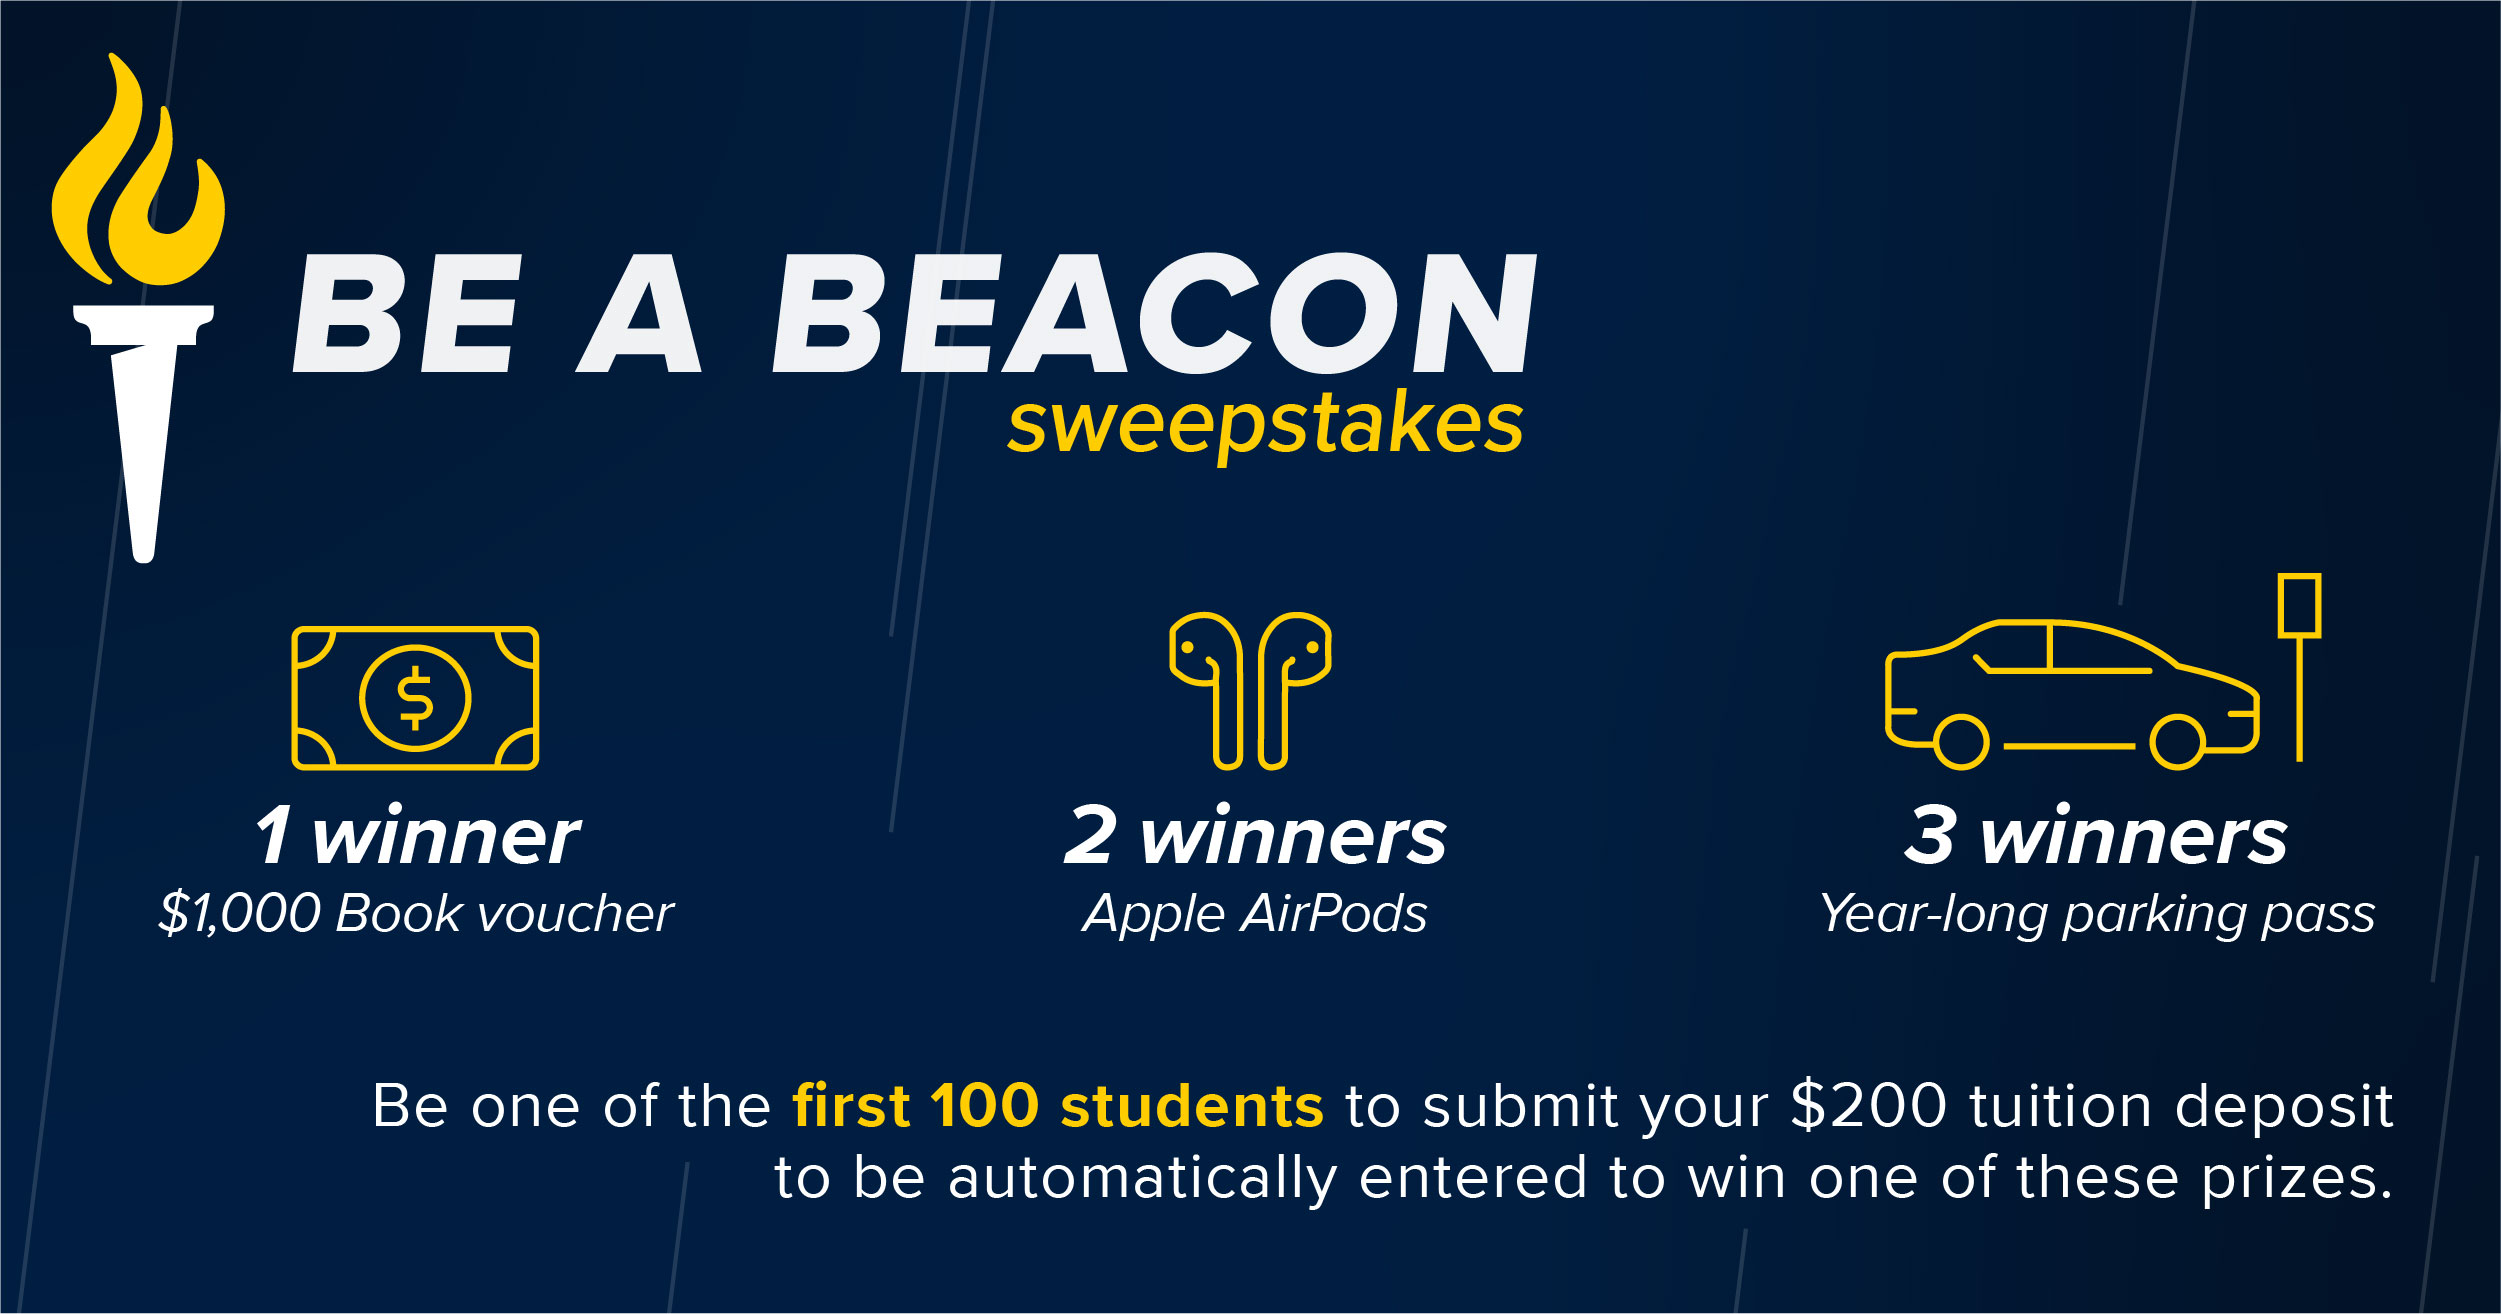 Bushnell Bound Sweepstakes. Be one of the first 100 students to submit your enrollment deposit to be entered to win.